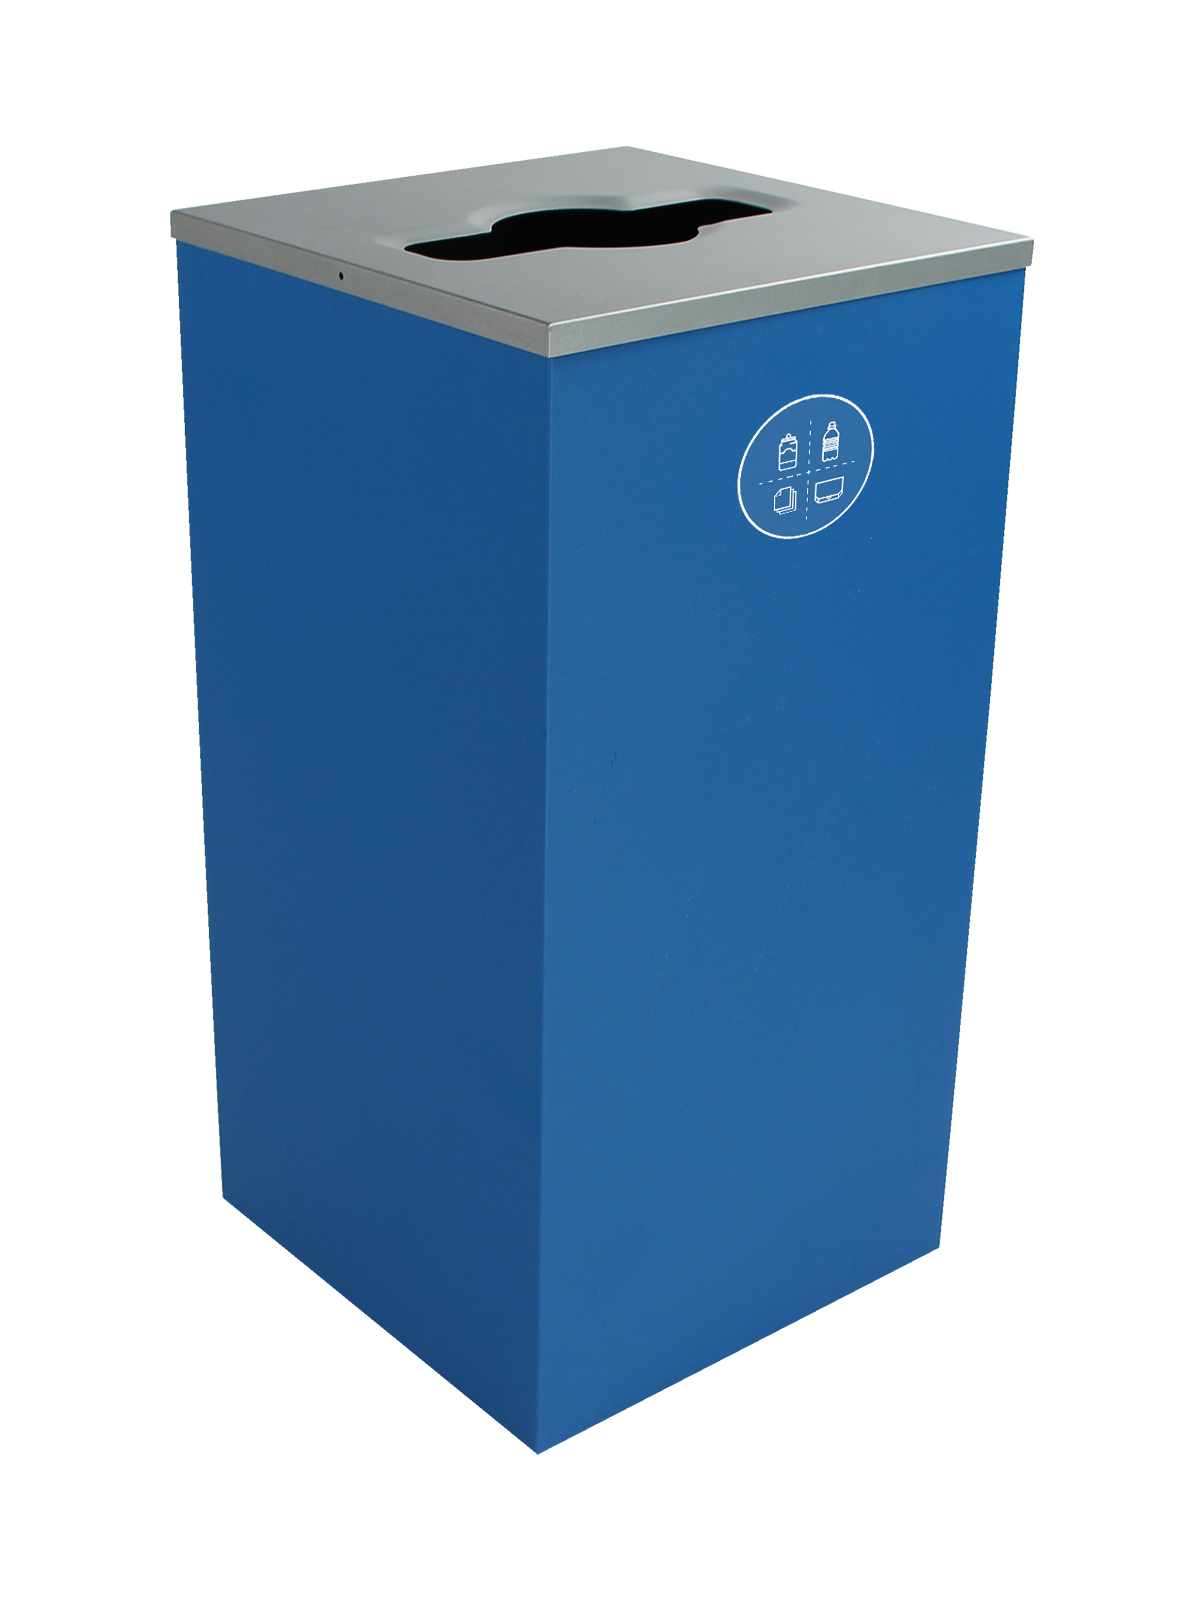 SPECTRUM - Single - Cube - Mixed Recyclables - Mixed - Blue